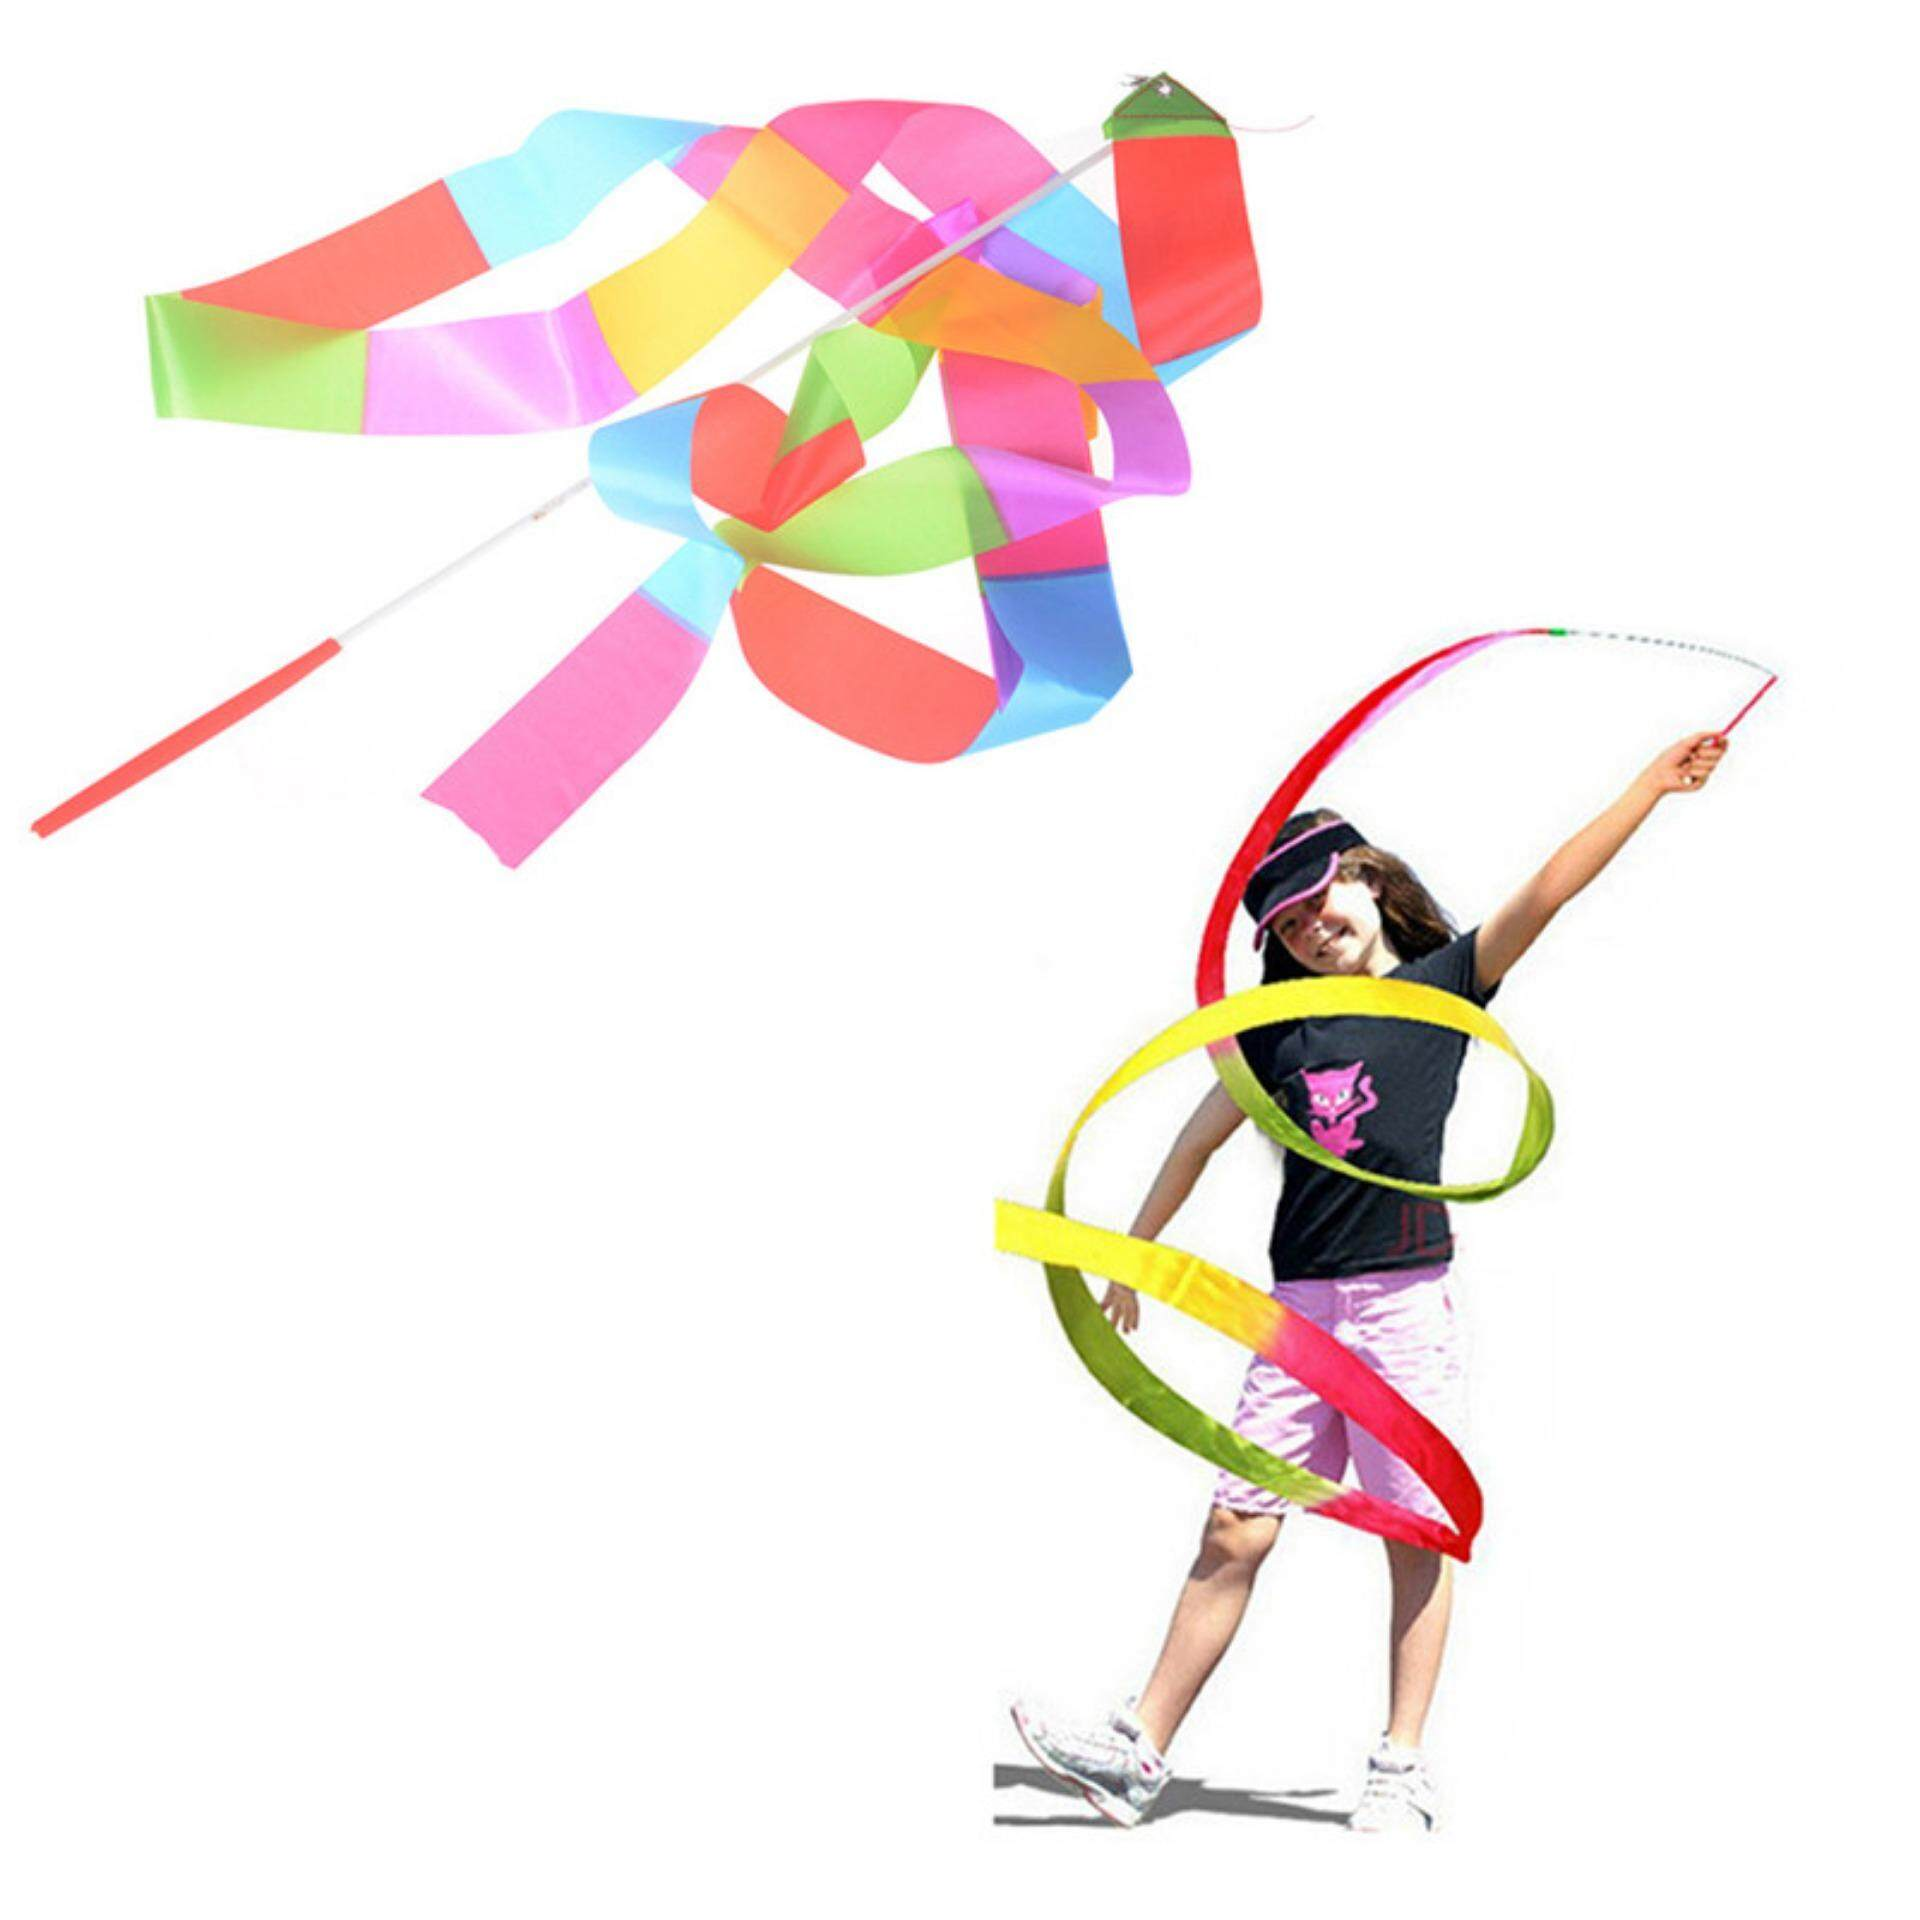 Popular Colorful 4m Ribbon Gymnastics Dance Dancer Toy Kid Outdoor Sport Toy By Crystal Wave.